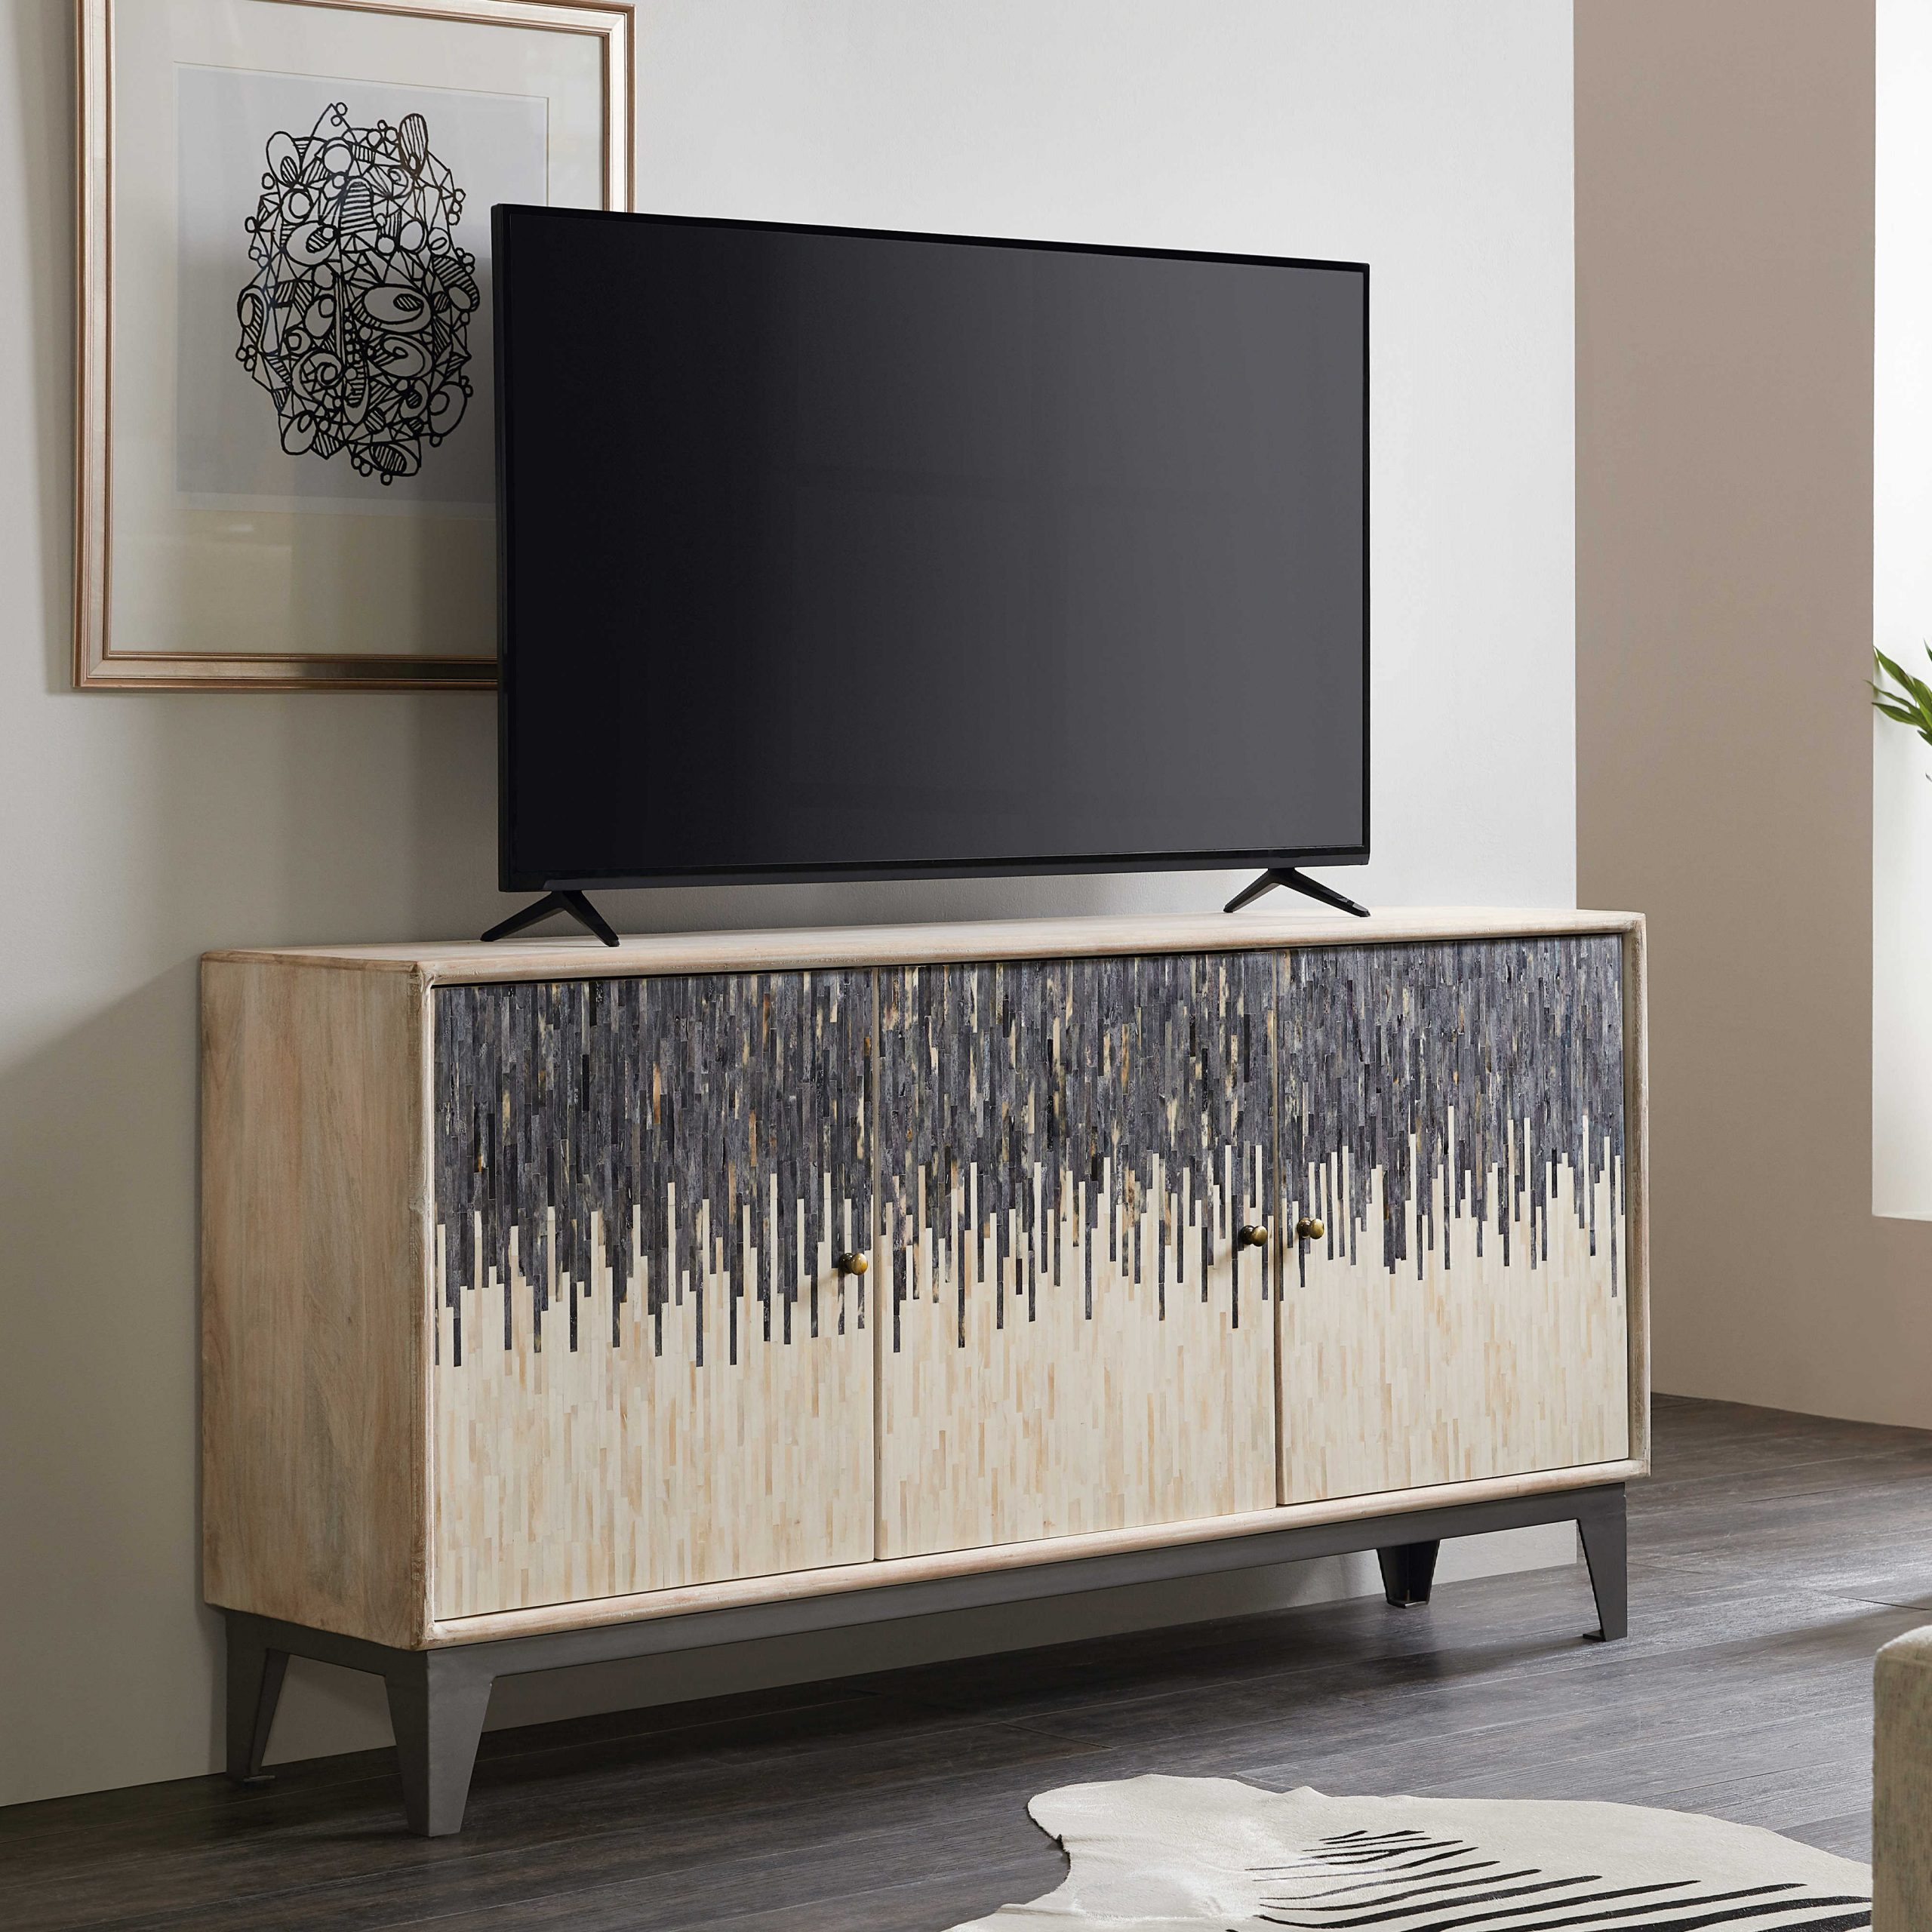 Lucy Cane Grey Wide Tv Stands With Regard To Well Known Hooker Furniture Light Wood 69'' Wide Tv Console (View 4 of 25)